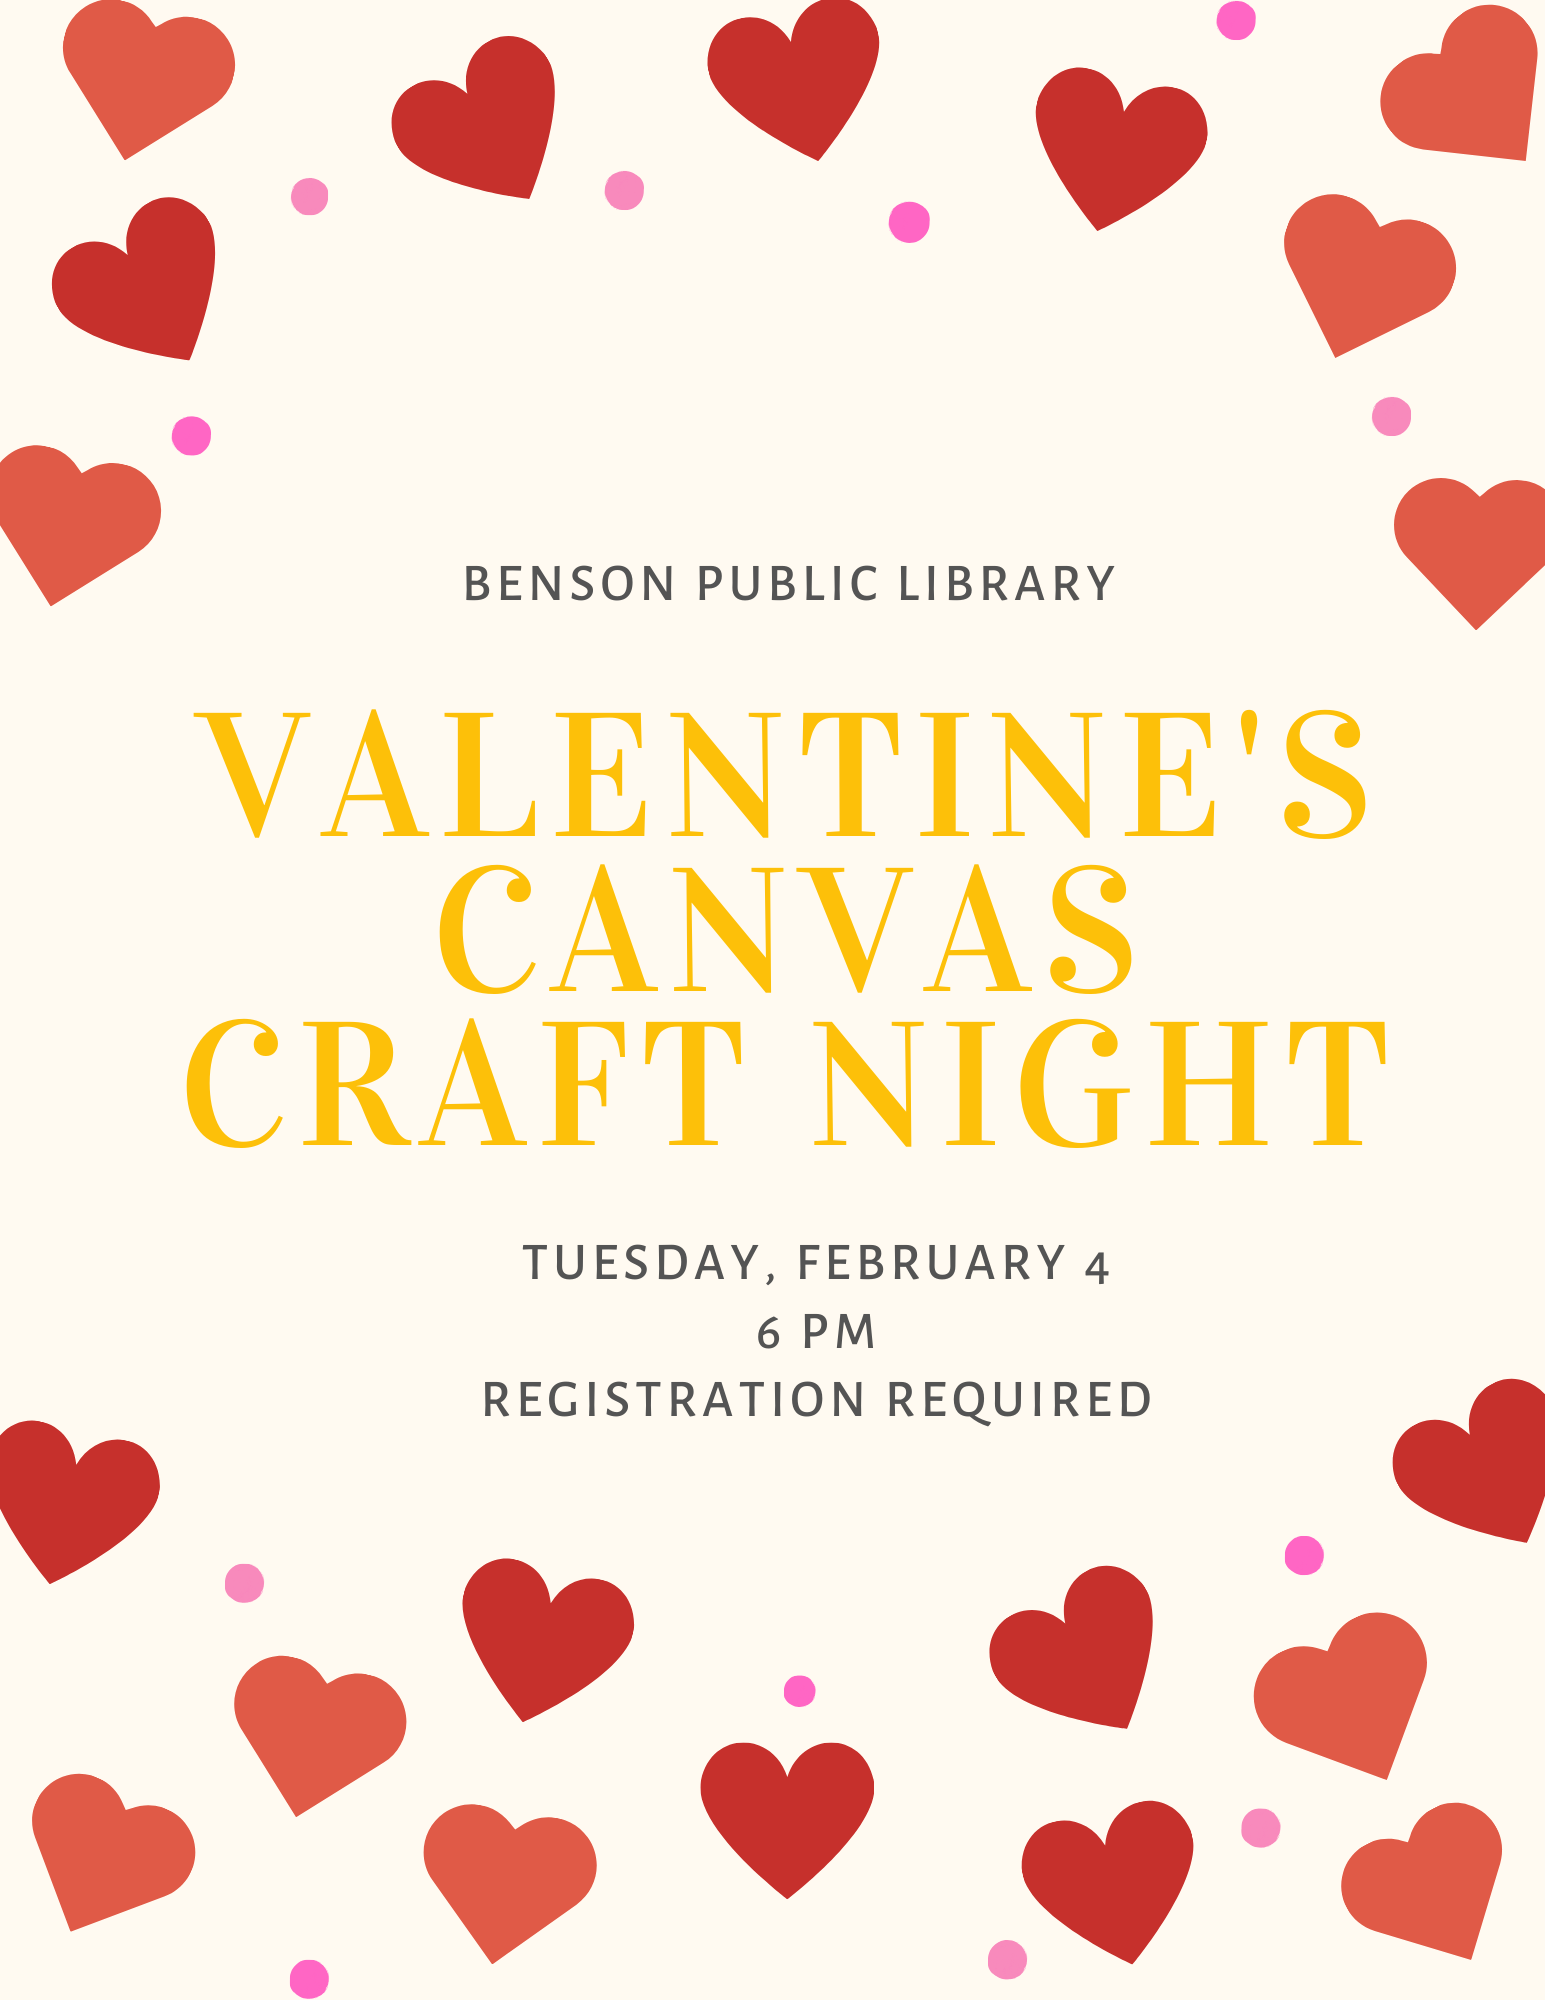 Let your creative juices flow this Valentine's Day! We will be offering a multi-media Valentine's Craft Night on Tuesday, February 4 at 6 pm. Registration required.